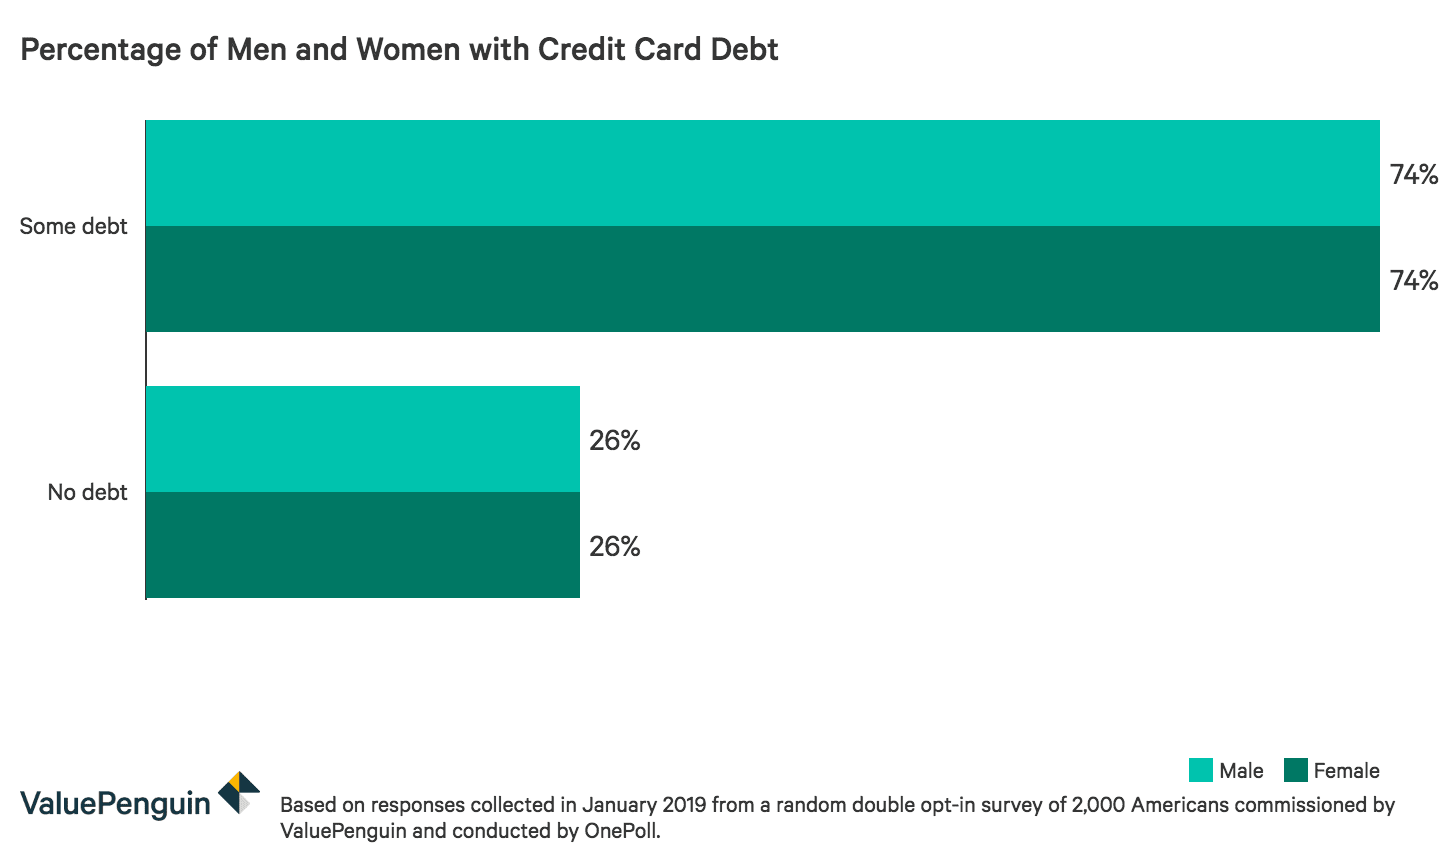 Credit card debt for men and women